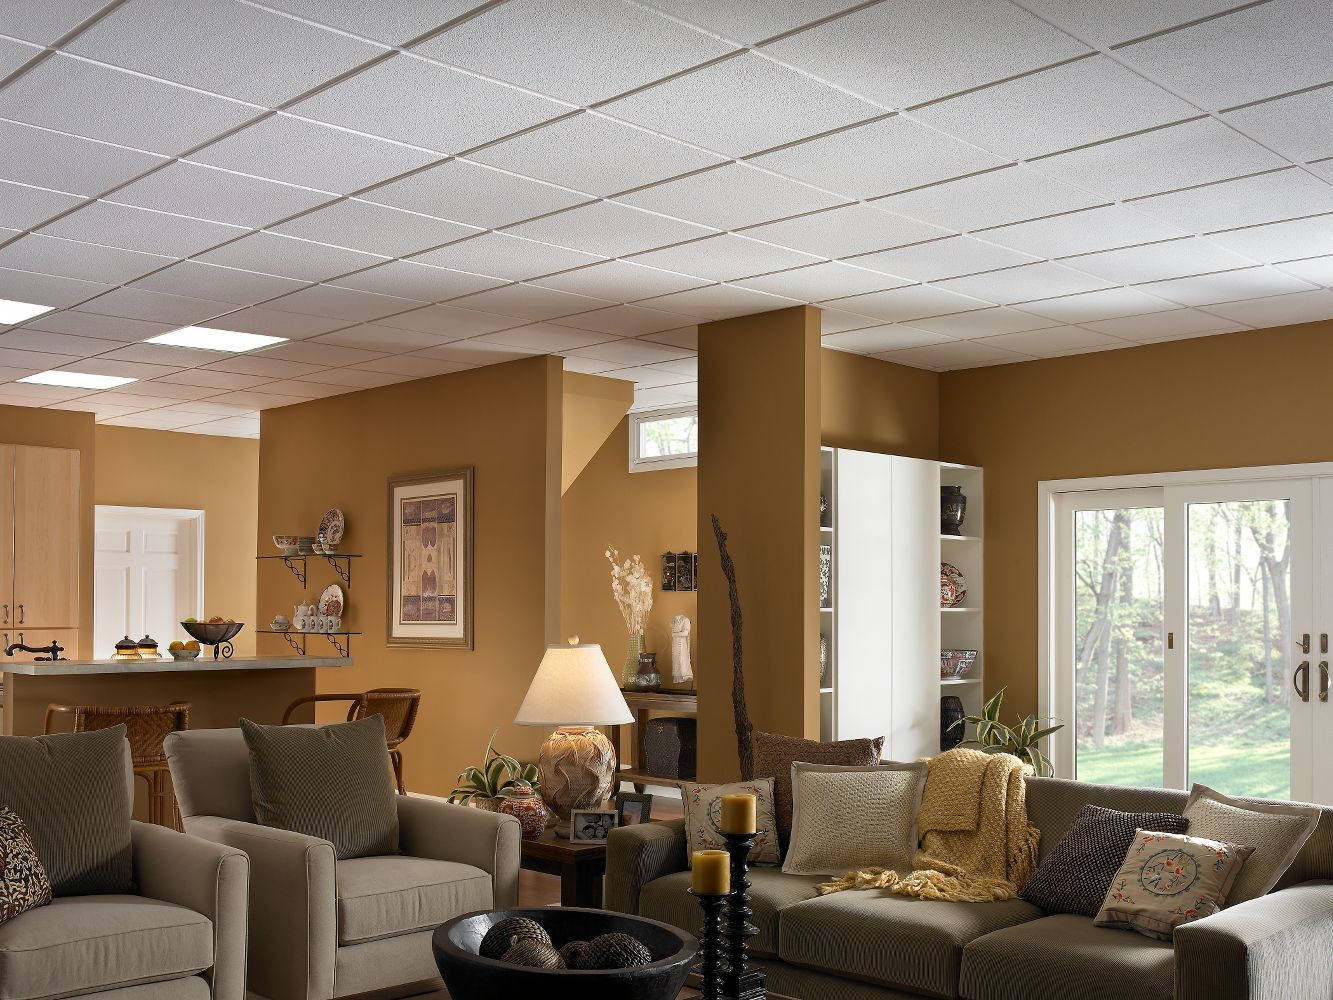 Sand Pebble Homestyle Ceilings Smooth Paintable 2 X 2